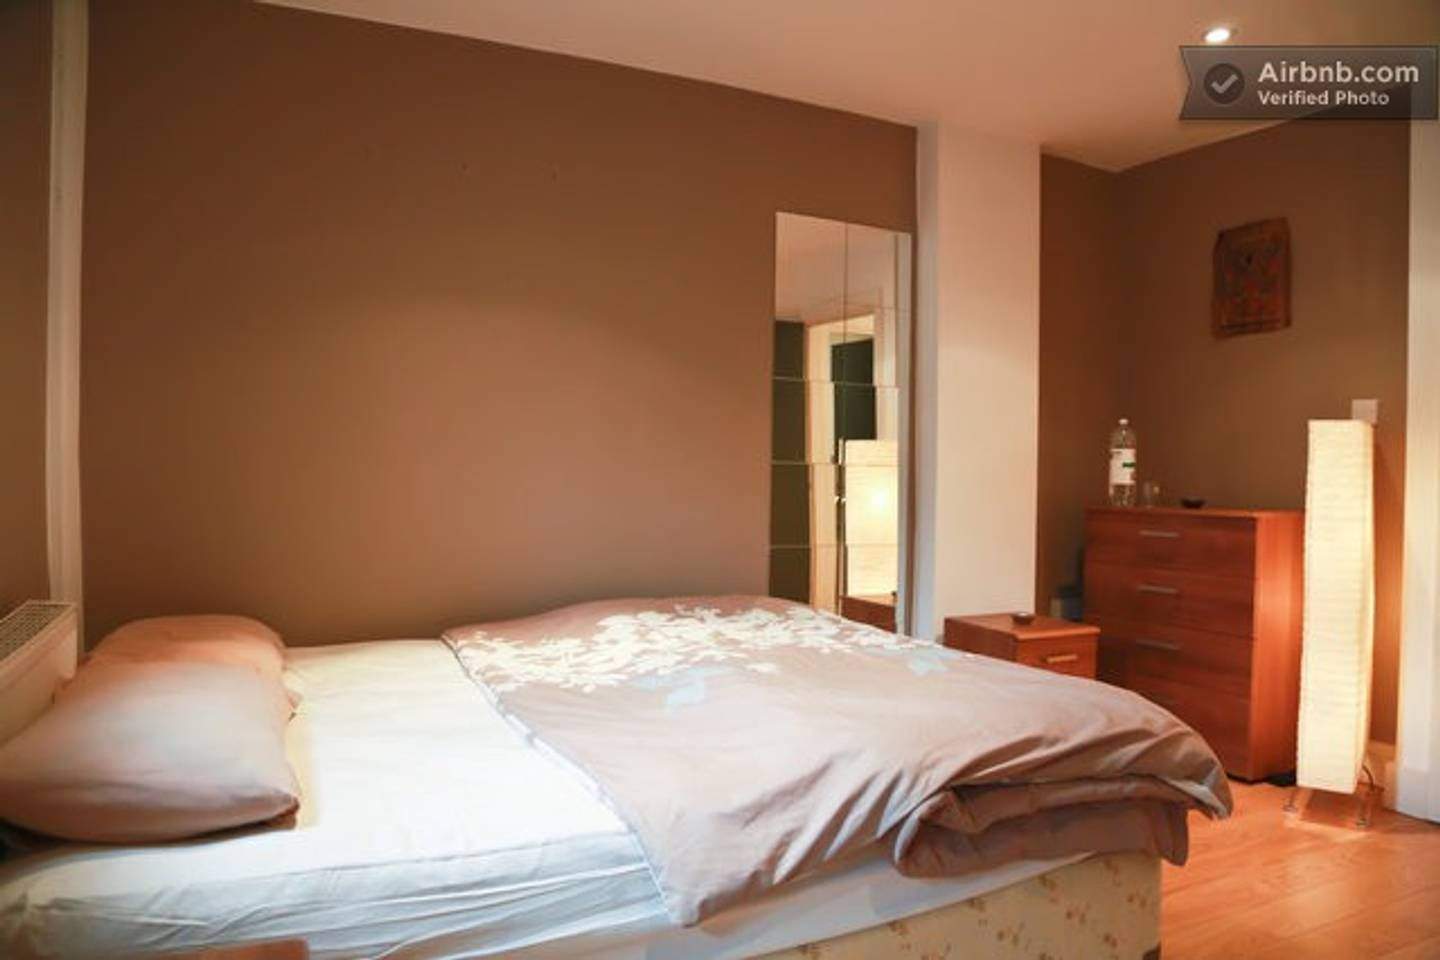 5min Walk From Camden Town Station Flats For Rent In London United Kingdom With Images Rent In London Flat Rent Camden Town